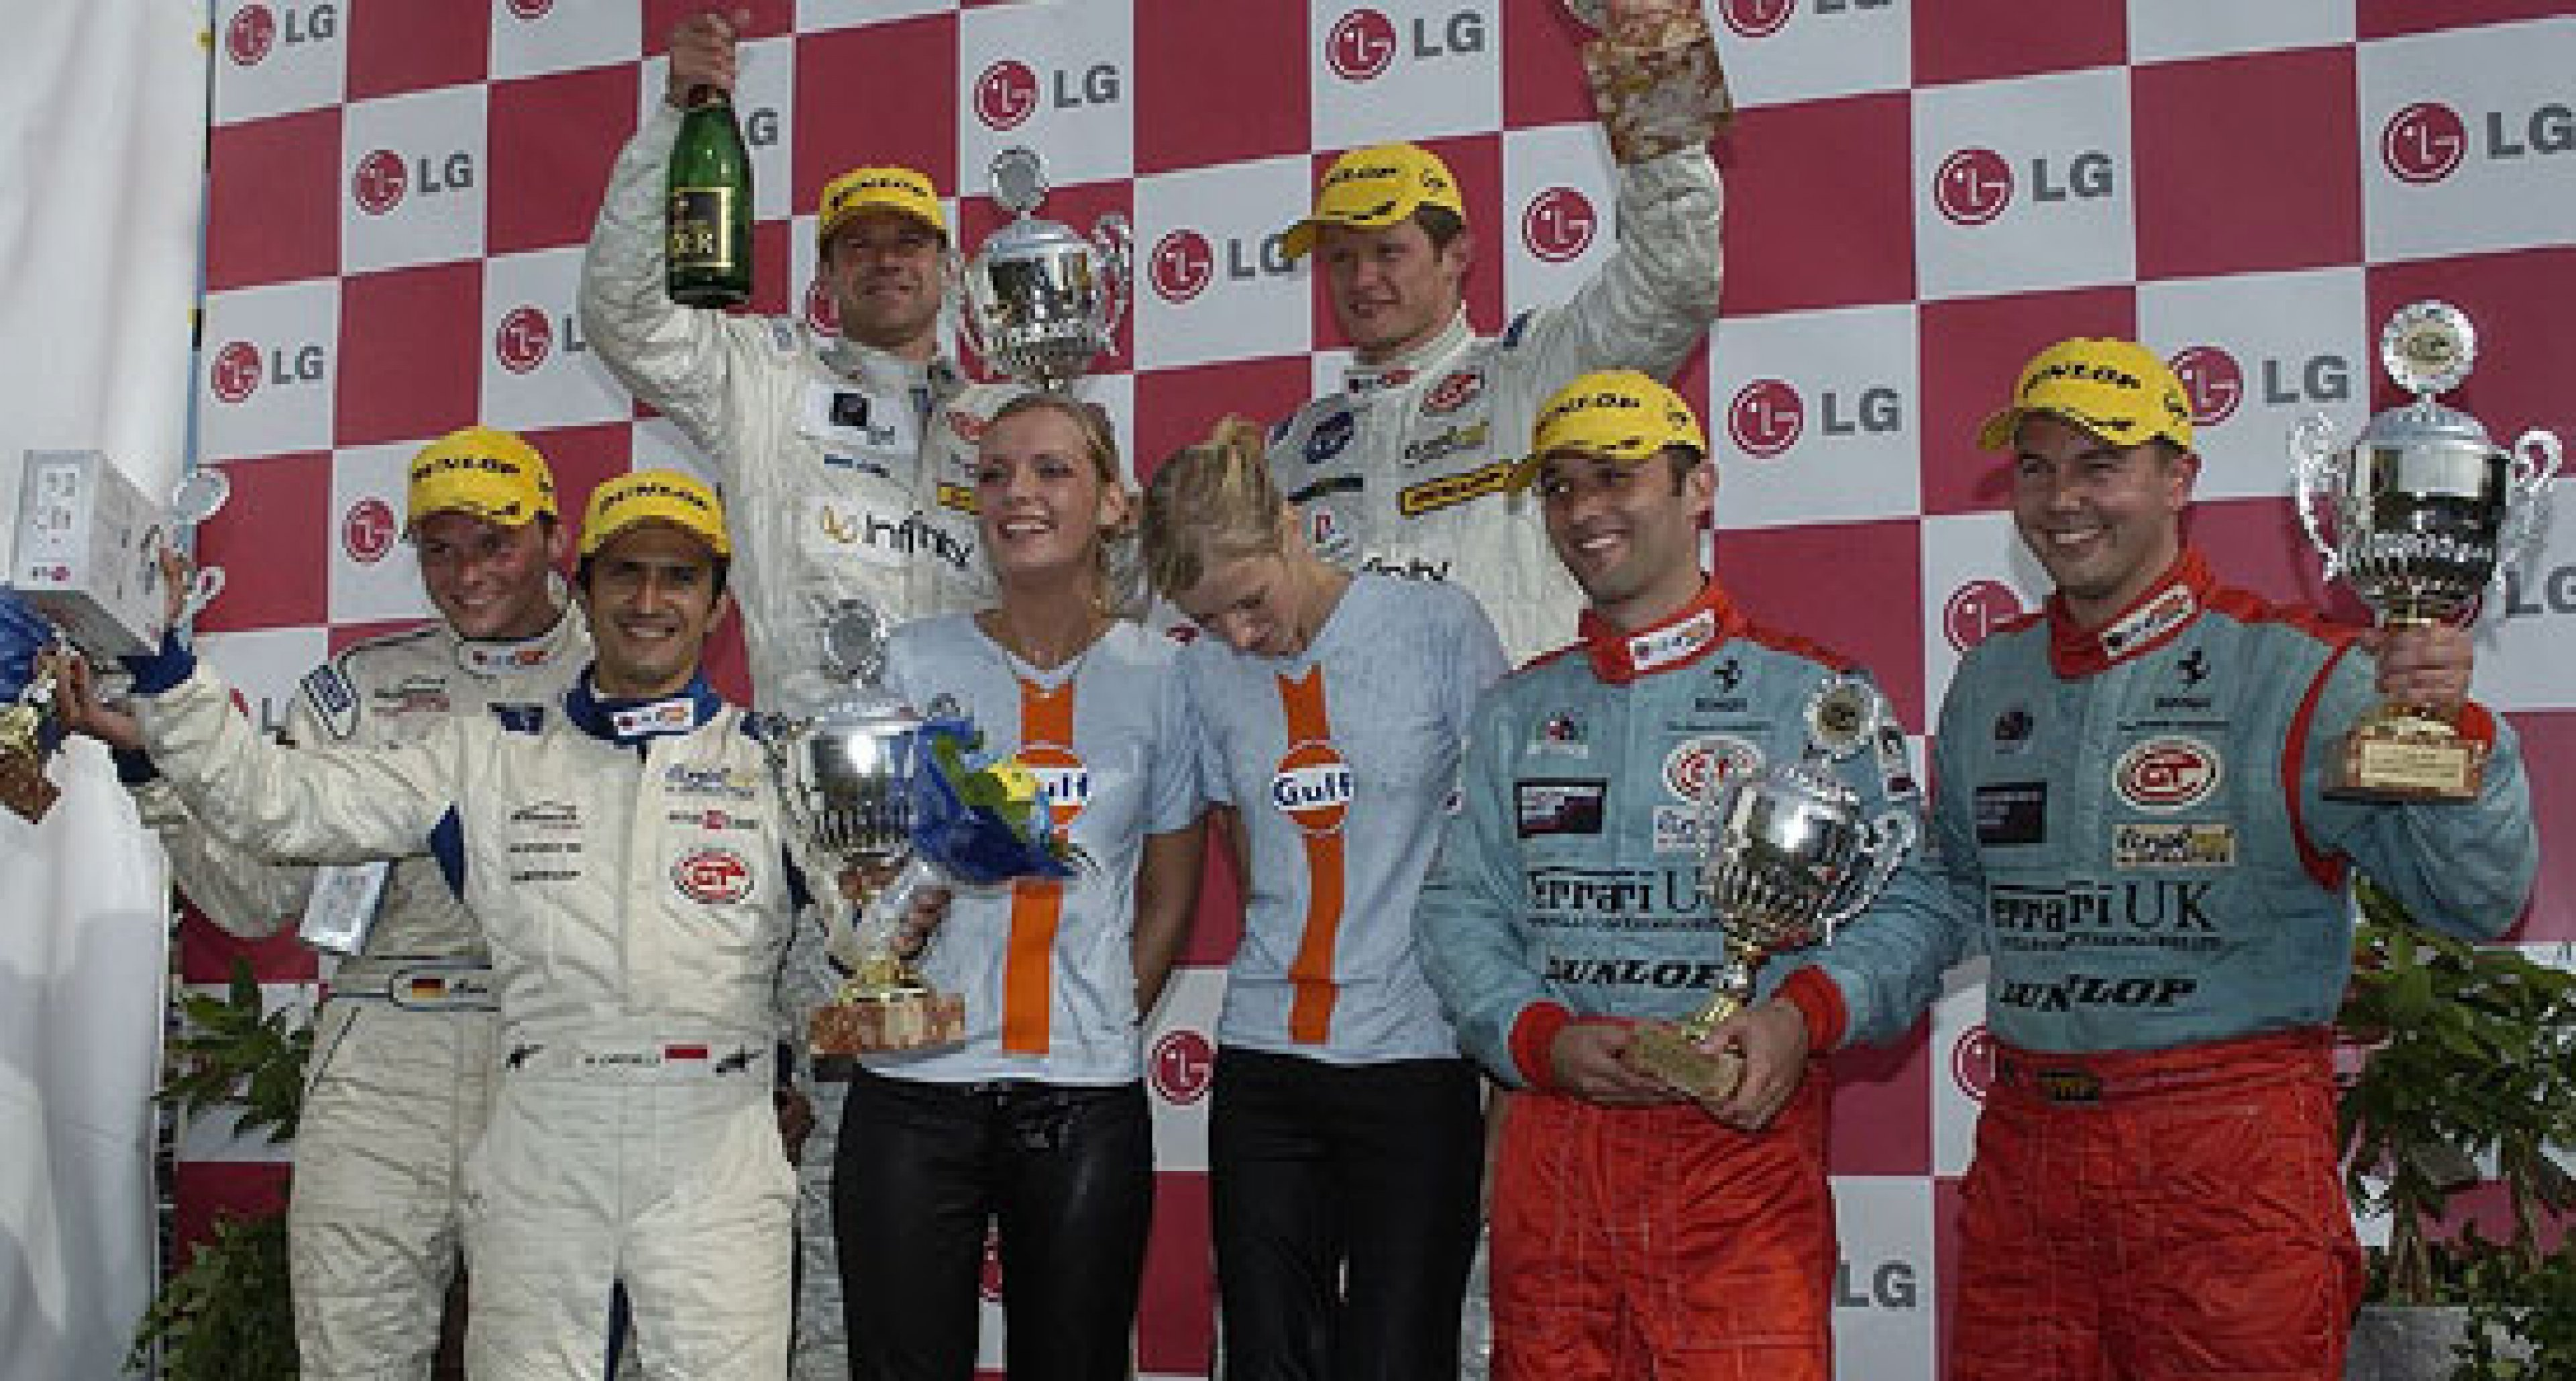 Team Maranello Concessionaires - Anderstorp, Sweden - on the podium